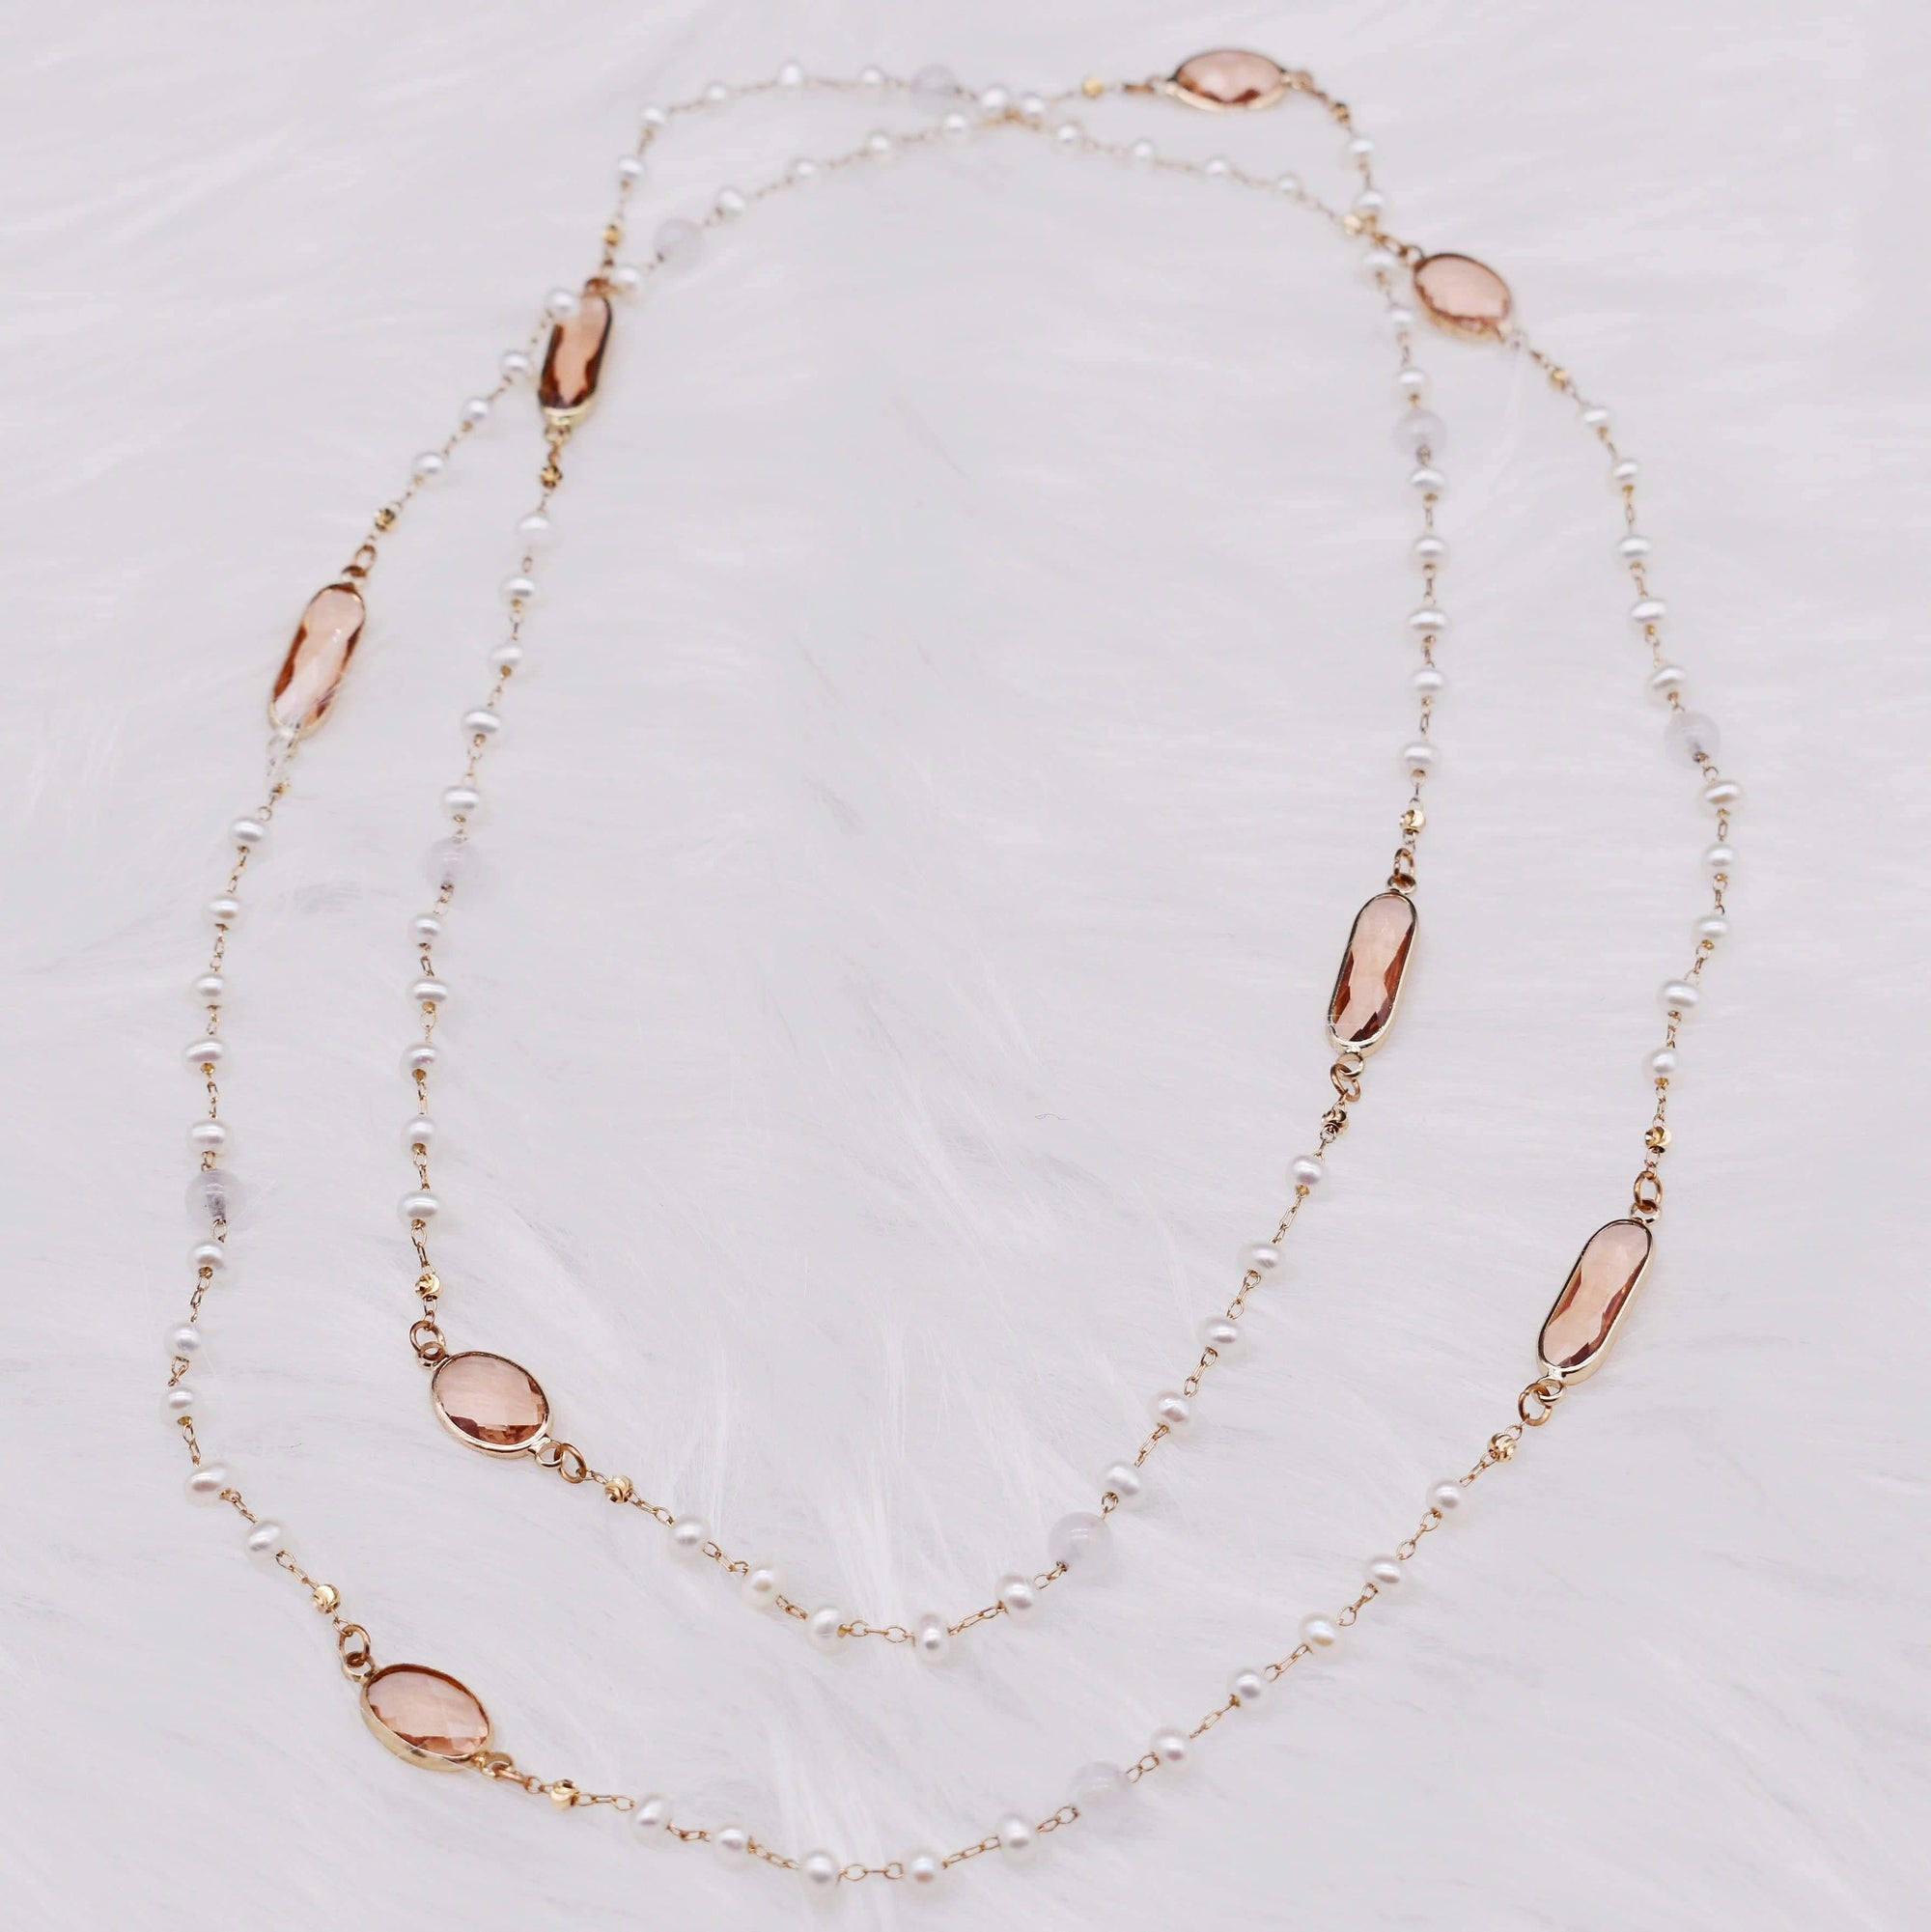 Freshwater Pearl Long Necklace - Roseann | Akuna Pearls | Freshwater Pearl Jewellery | Made in Australia